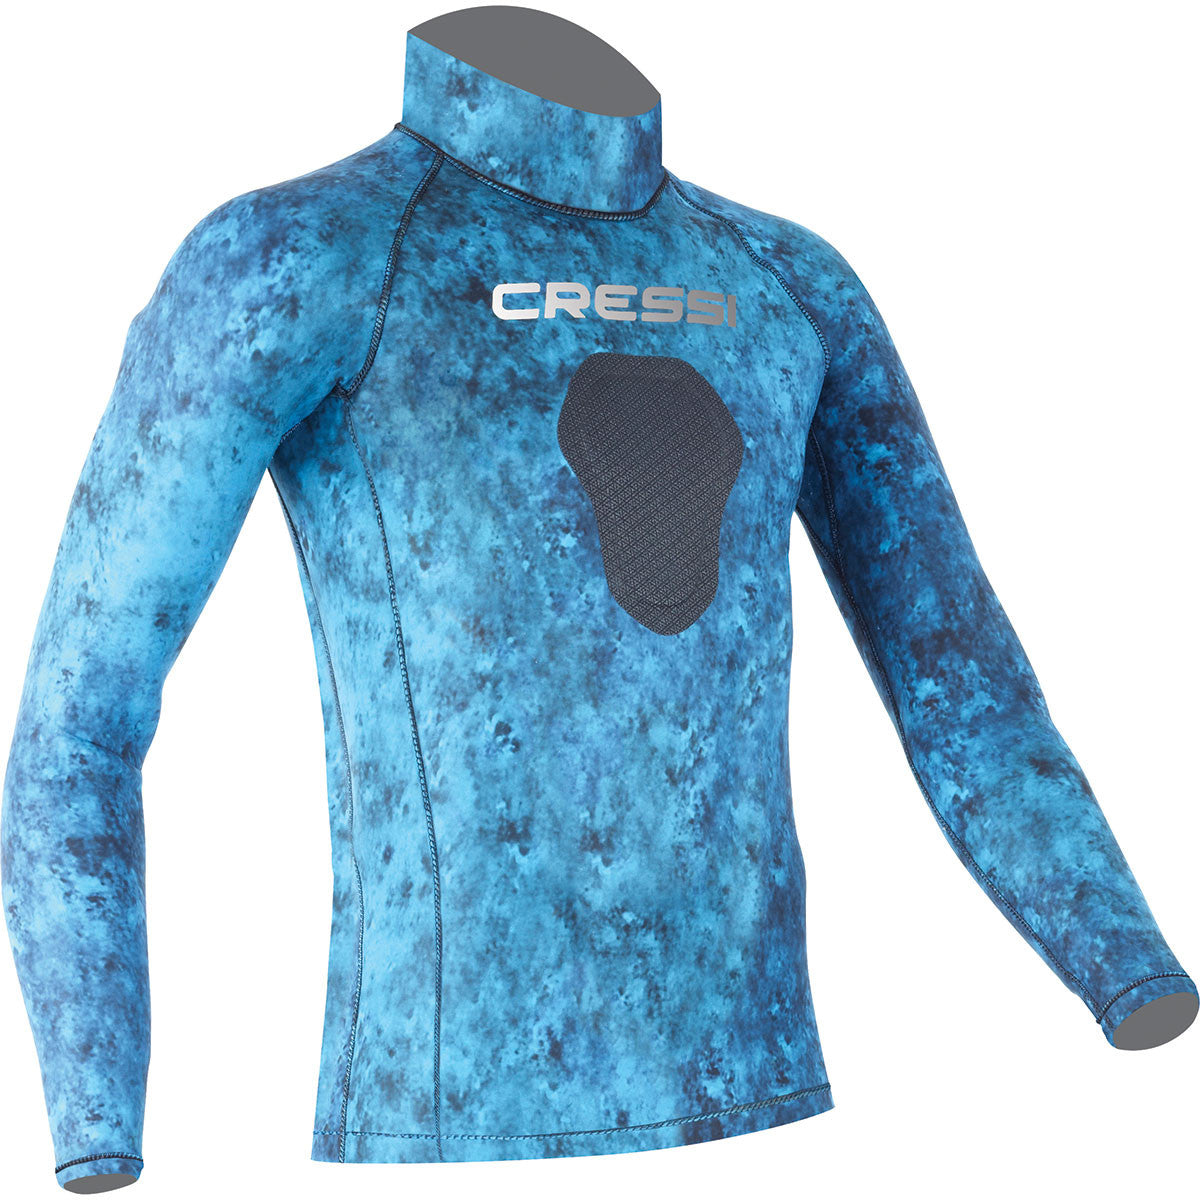 Cressi Blue Hunter Camo Freediving Rash Guard Wetsuit